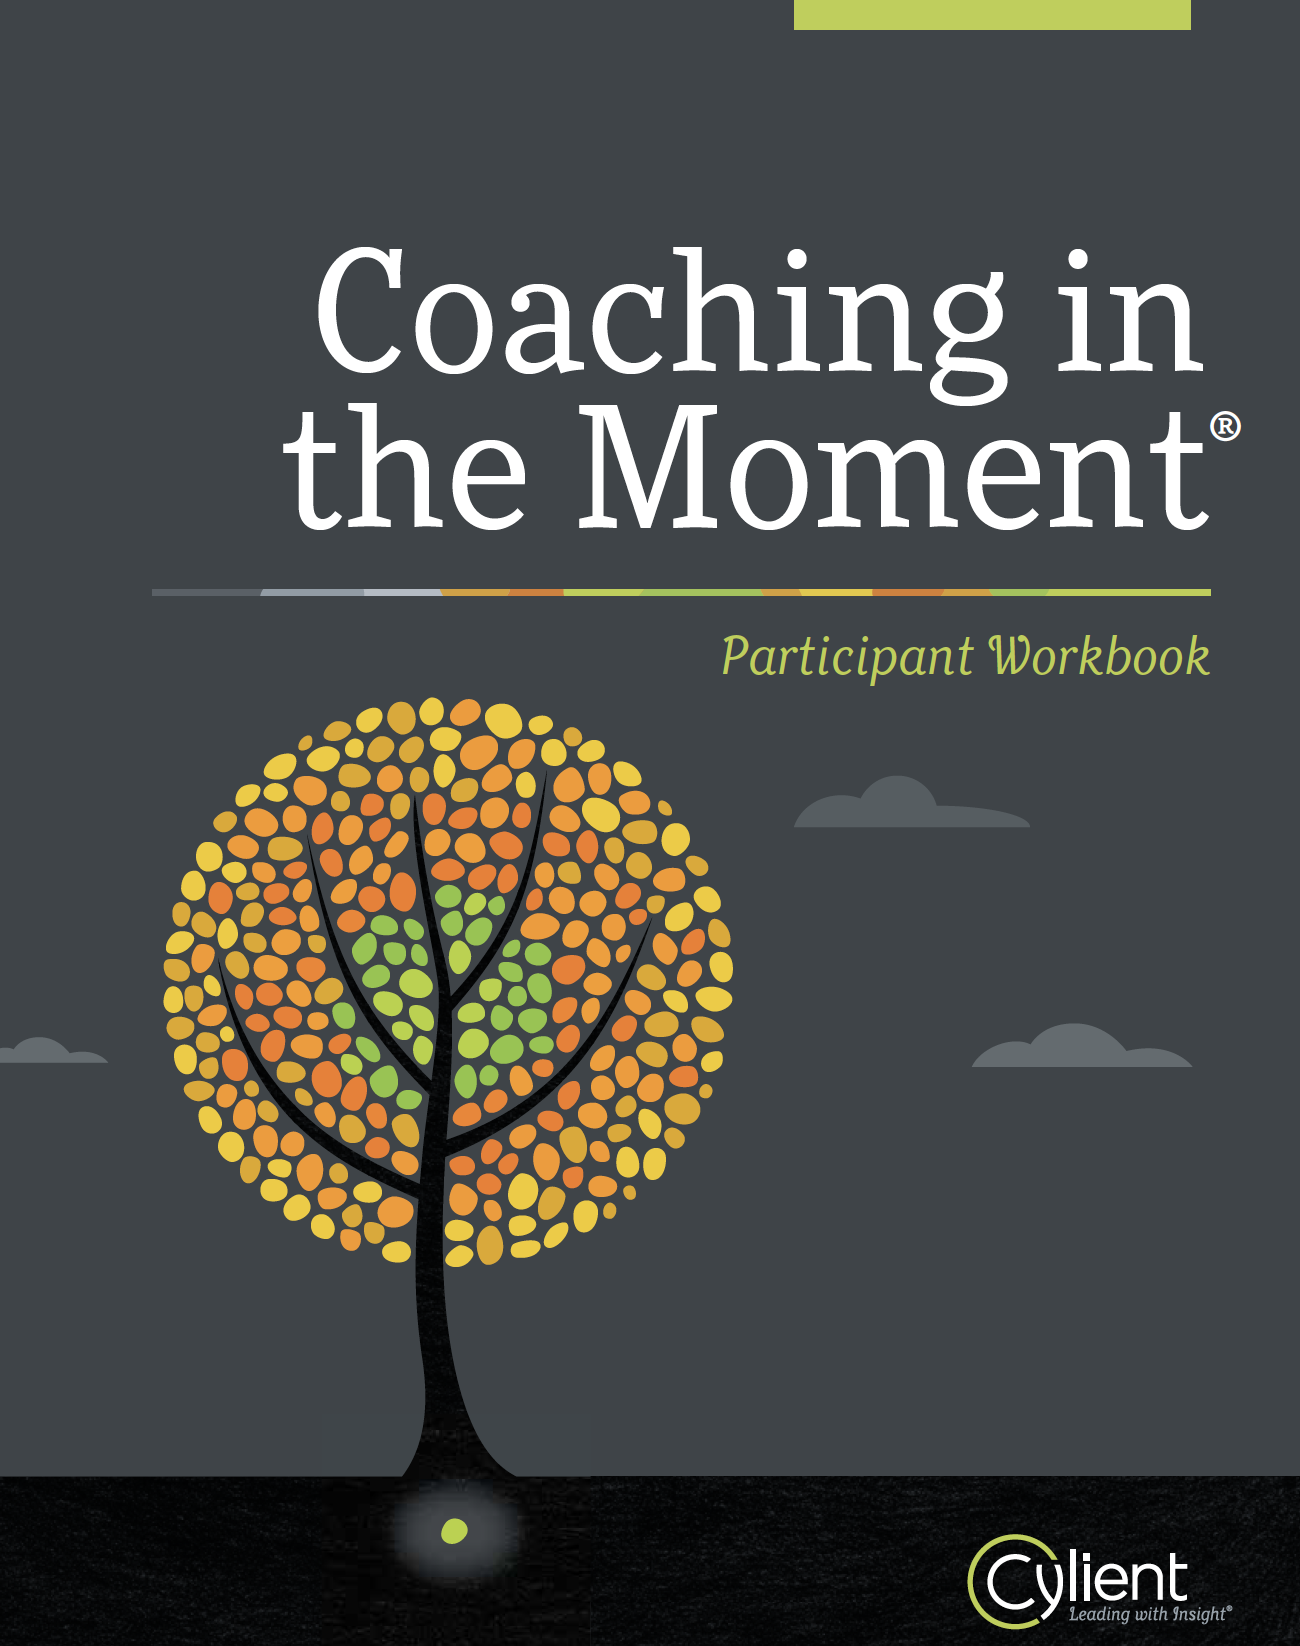 Coaching in the Moment® workshop